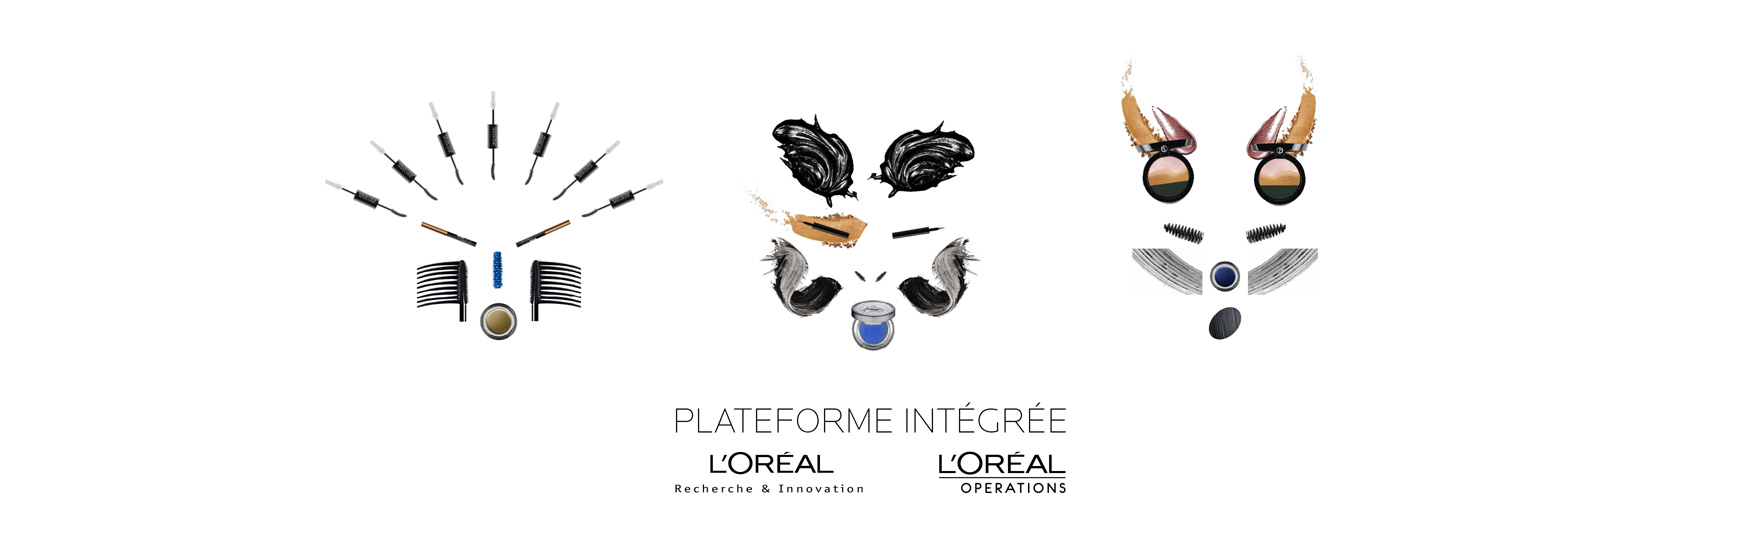 l'oreal-r-i- clemence-devienne